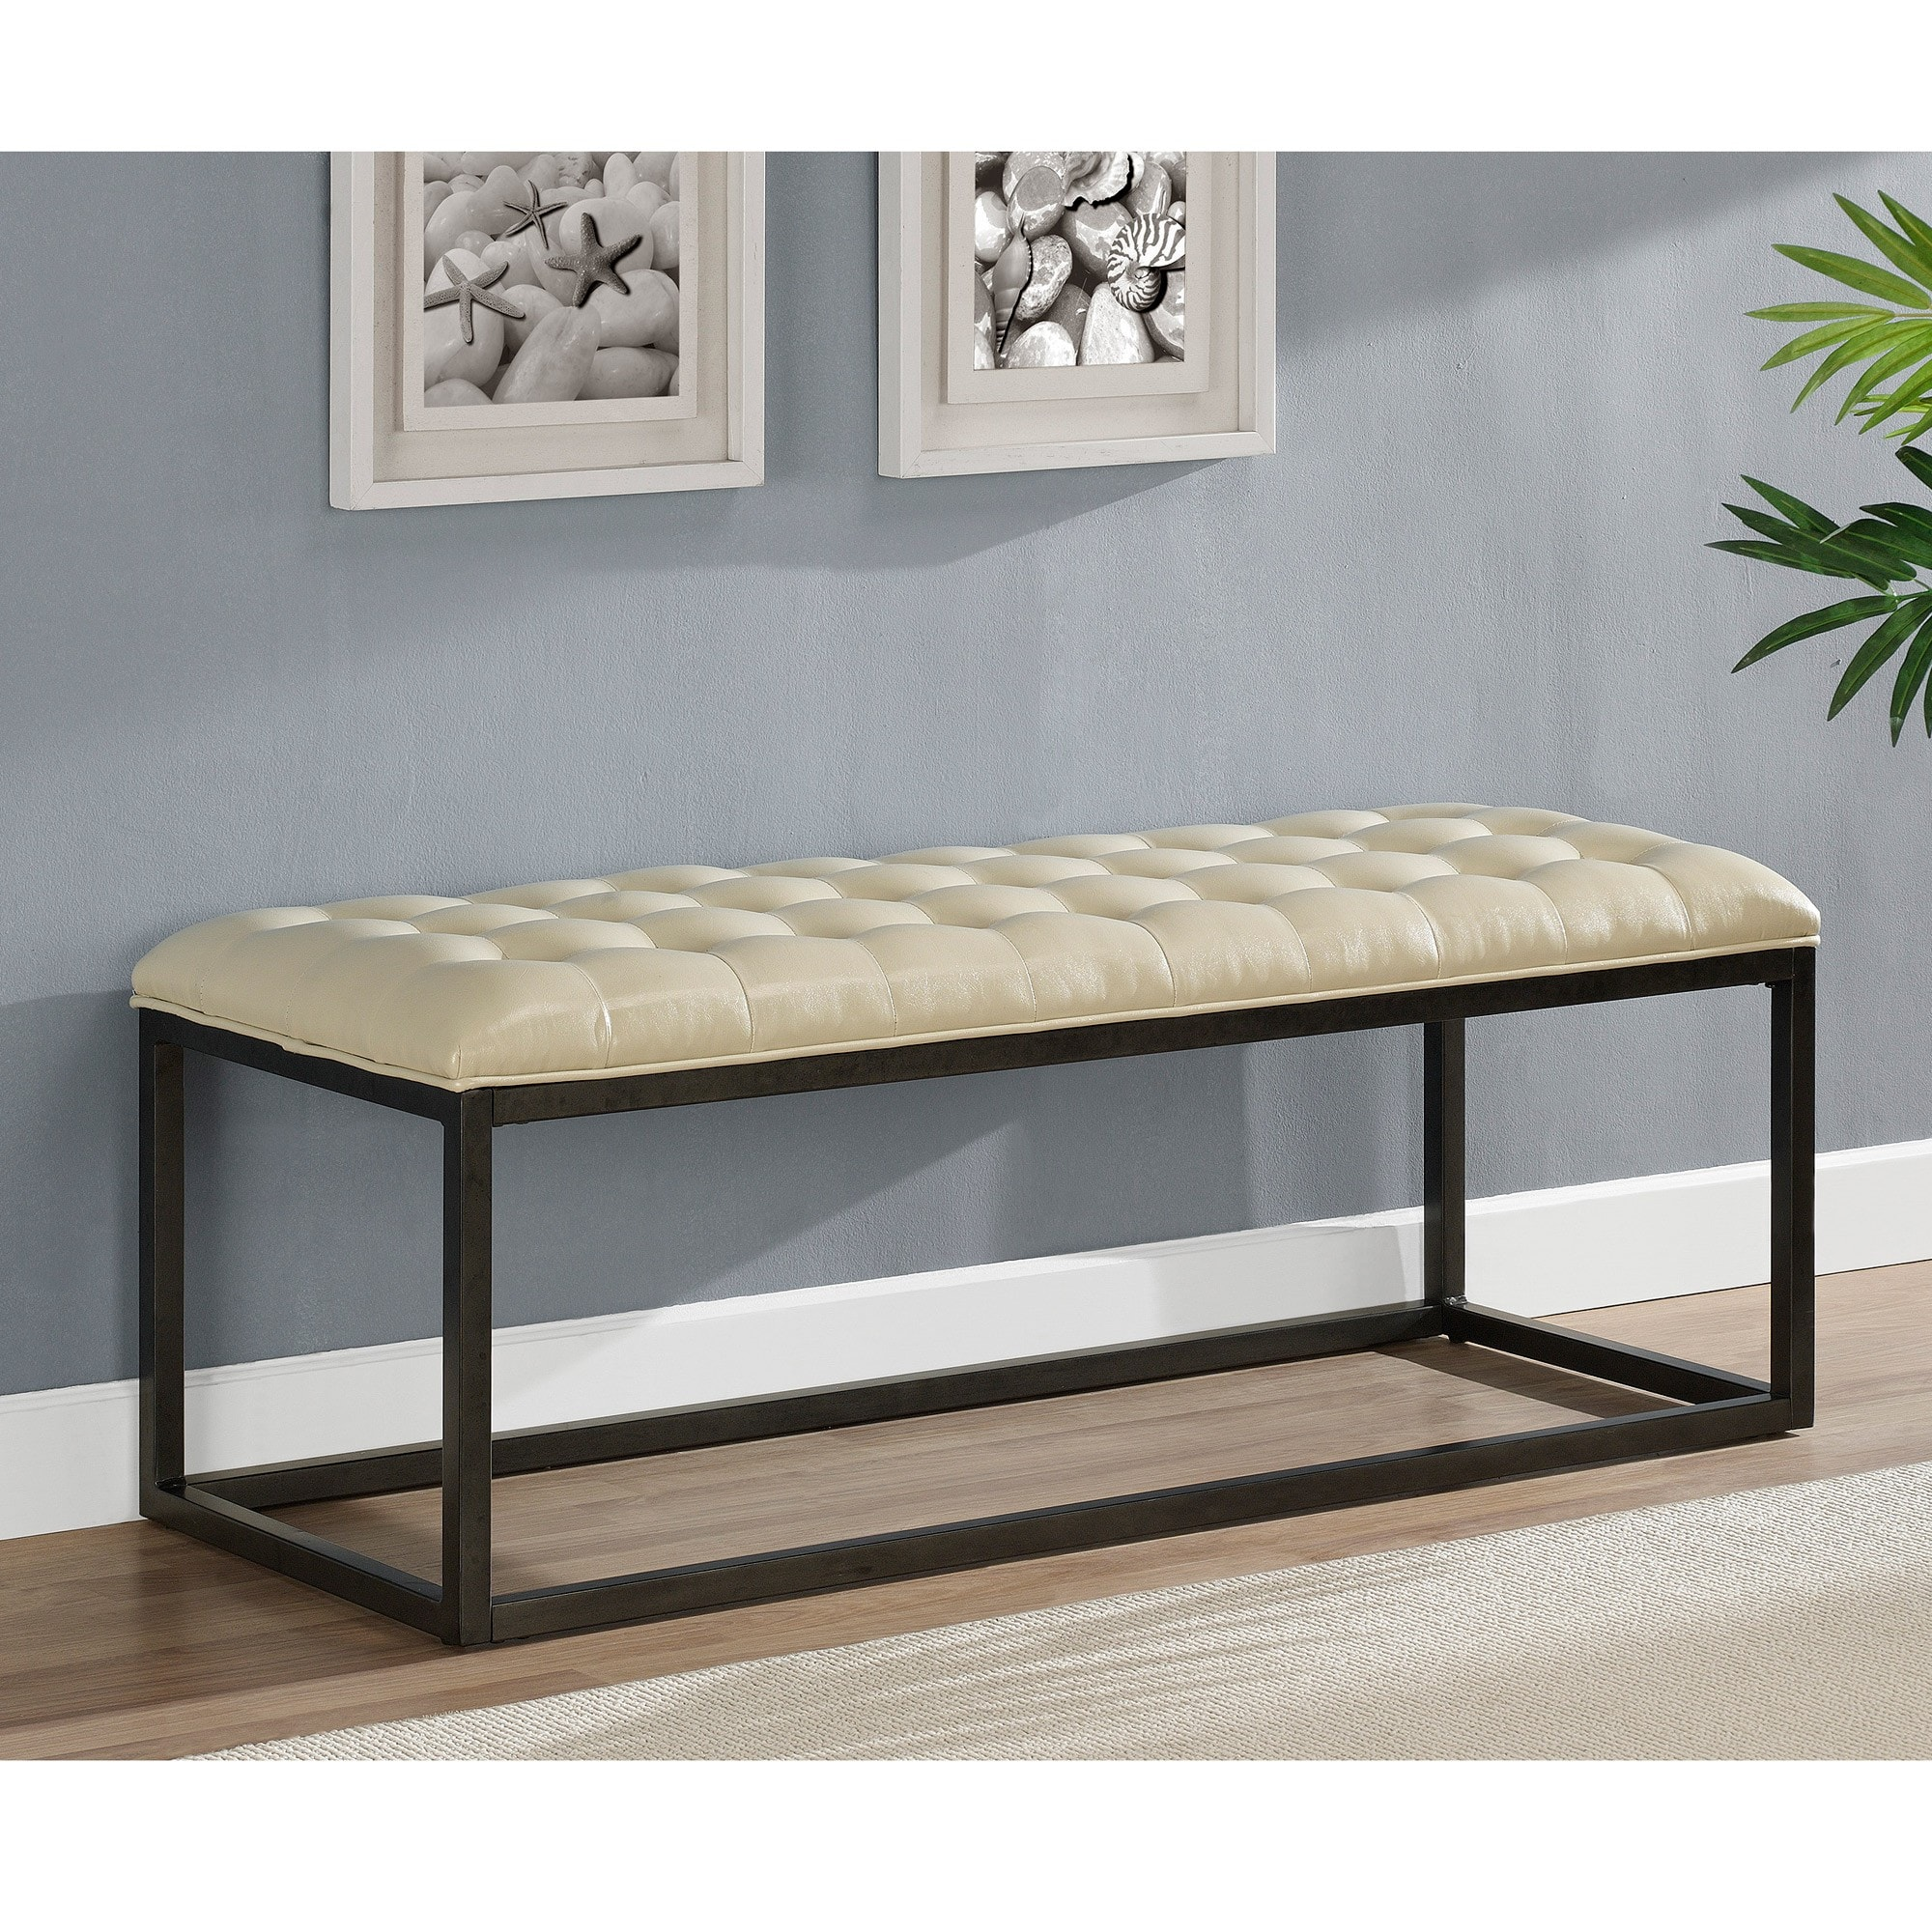 Healy Cream Bonded Leather Bench at Sears.com